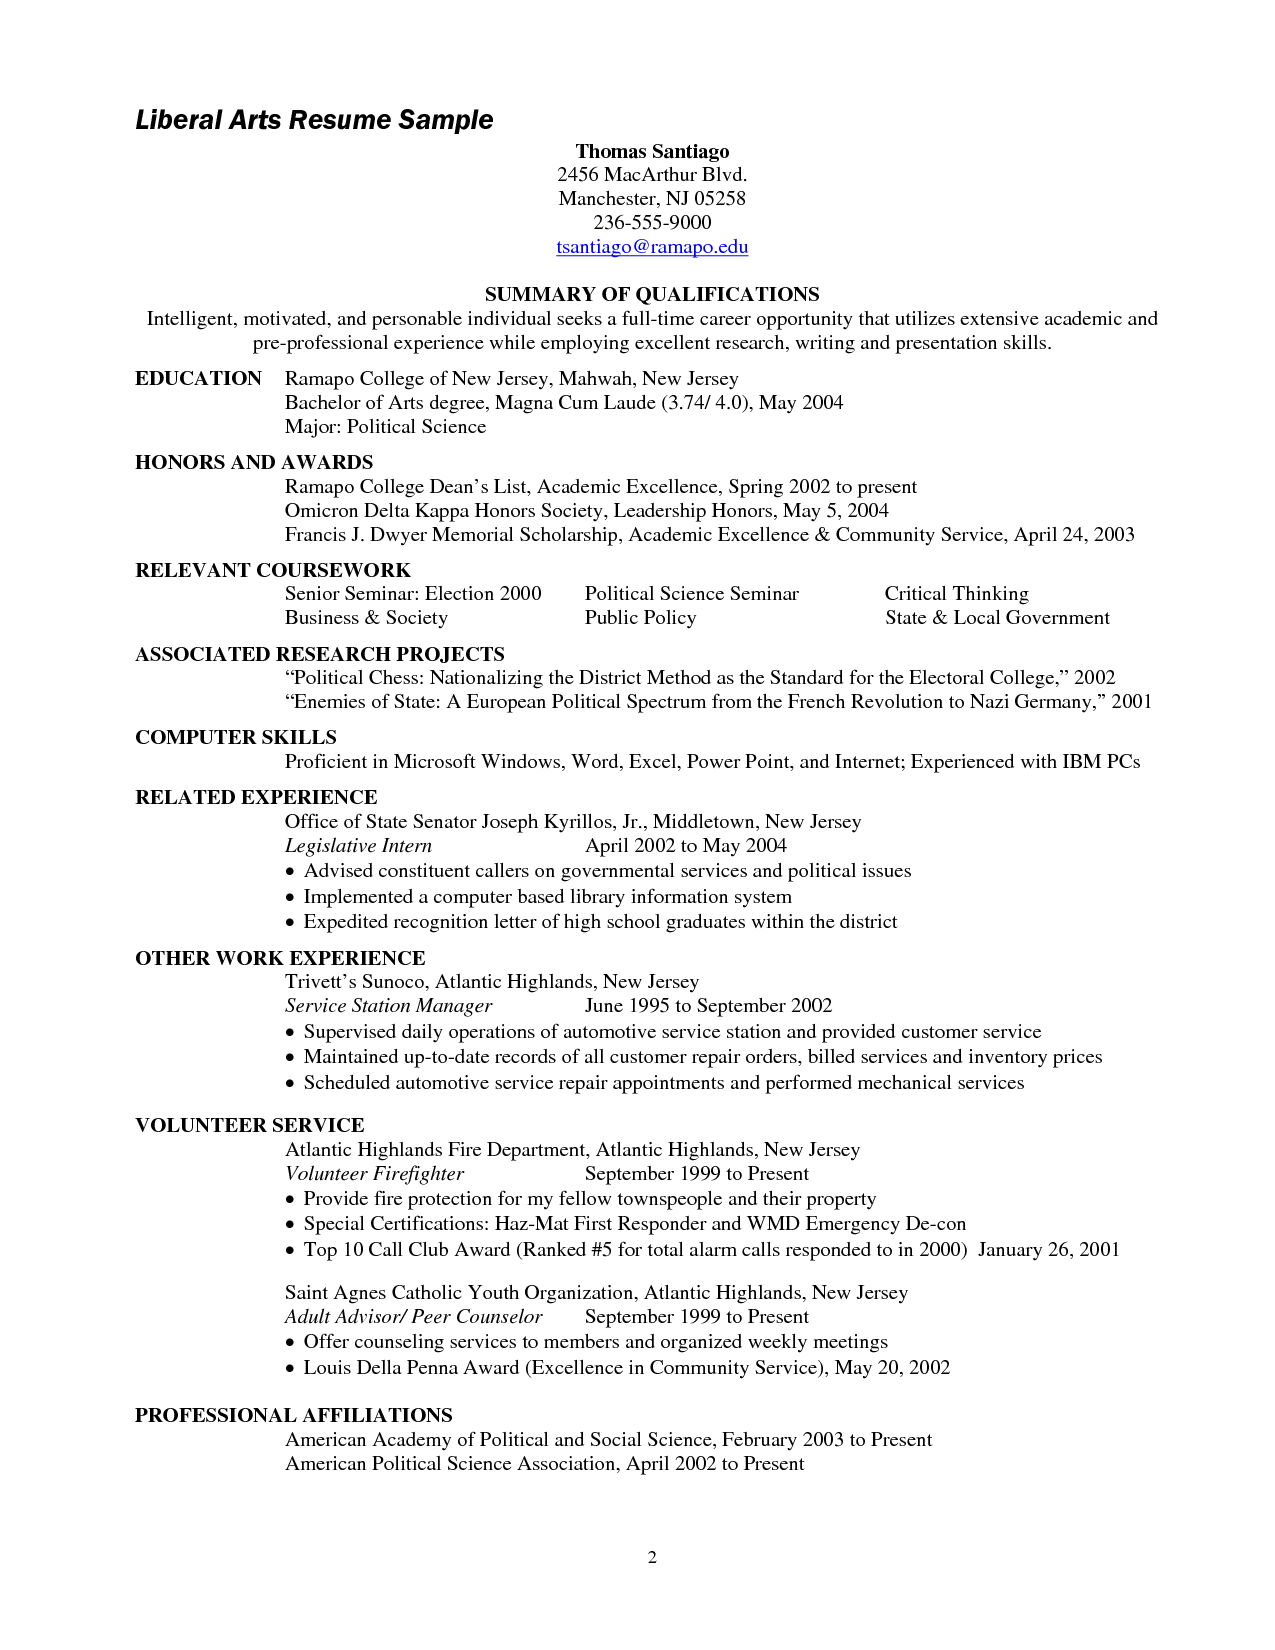 Sample Resume Liberal Arts Degree Expository Essay College Application Essay Essay